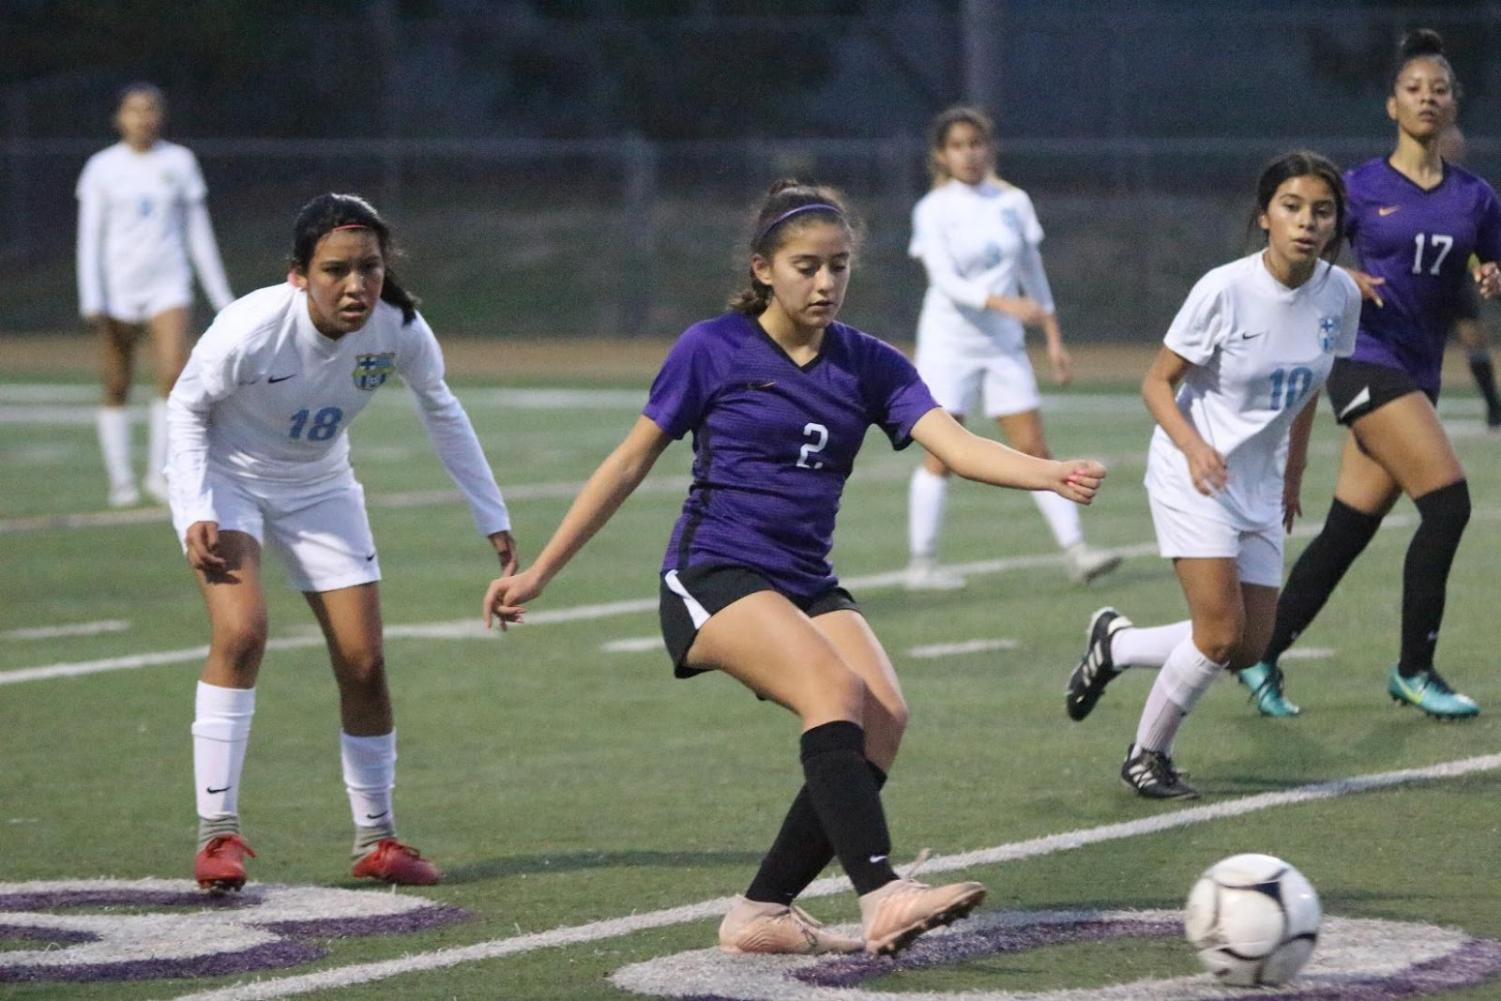 Freshman Isabelle Hurtado takes possession of the ball in the girl's last game of the season, defeating Montclair 4-1.